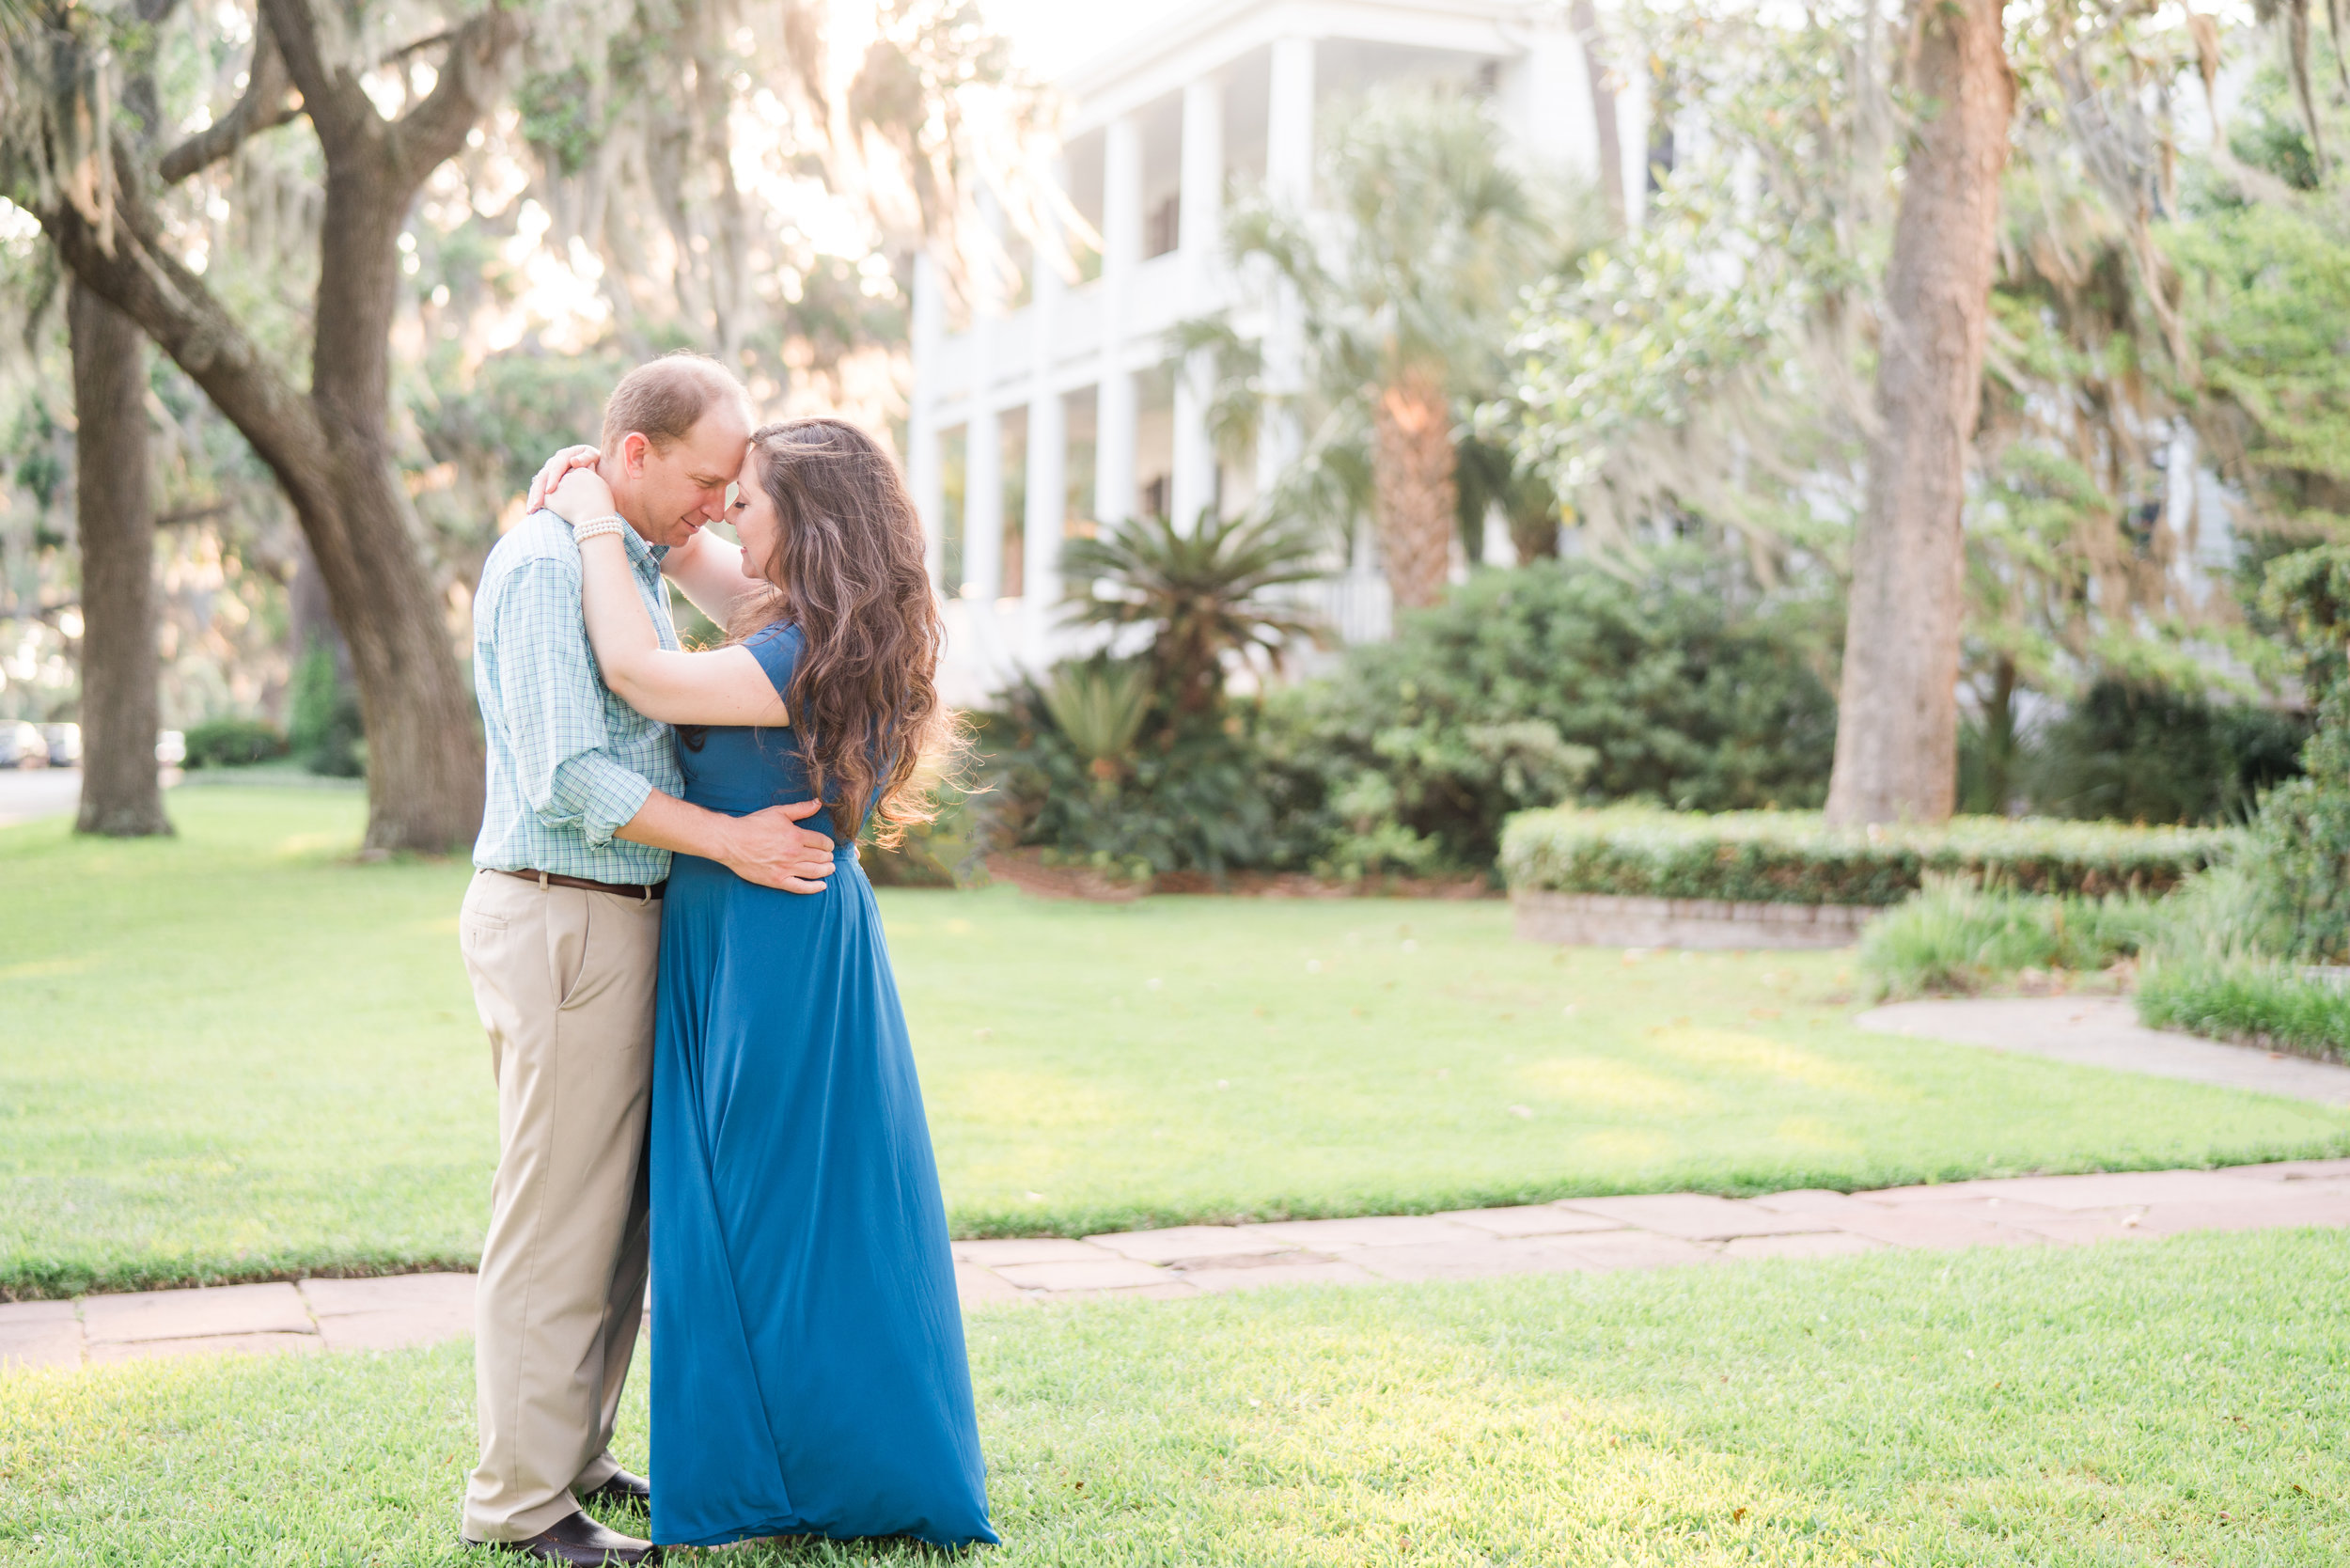 Photo Credit: Kate Dye Photography, Charleston, South Carolina